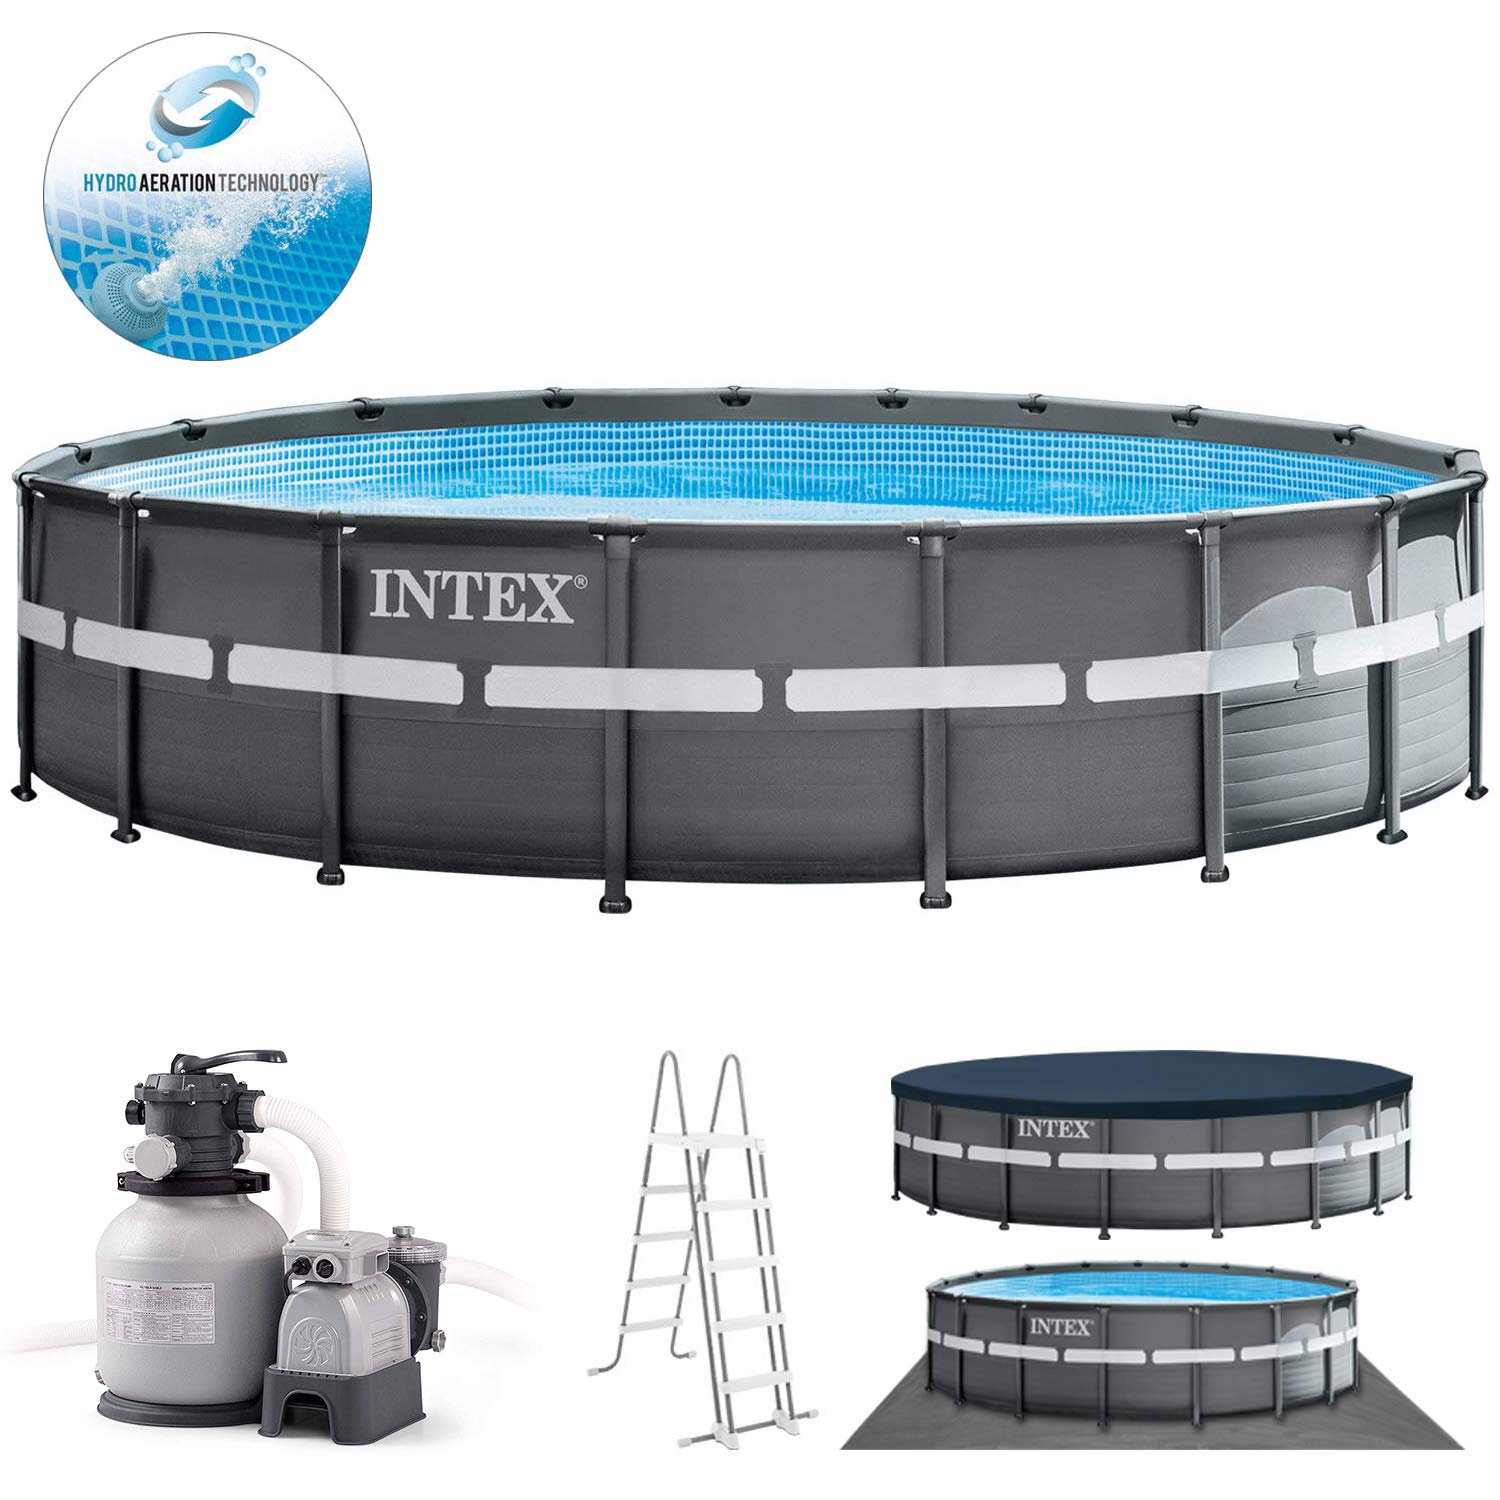 Intex 26330 Accesorio para - Piscina: Amazon.es: Juguetes y ...